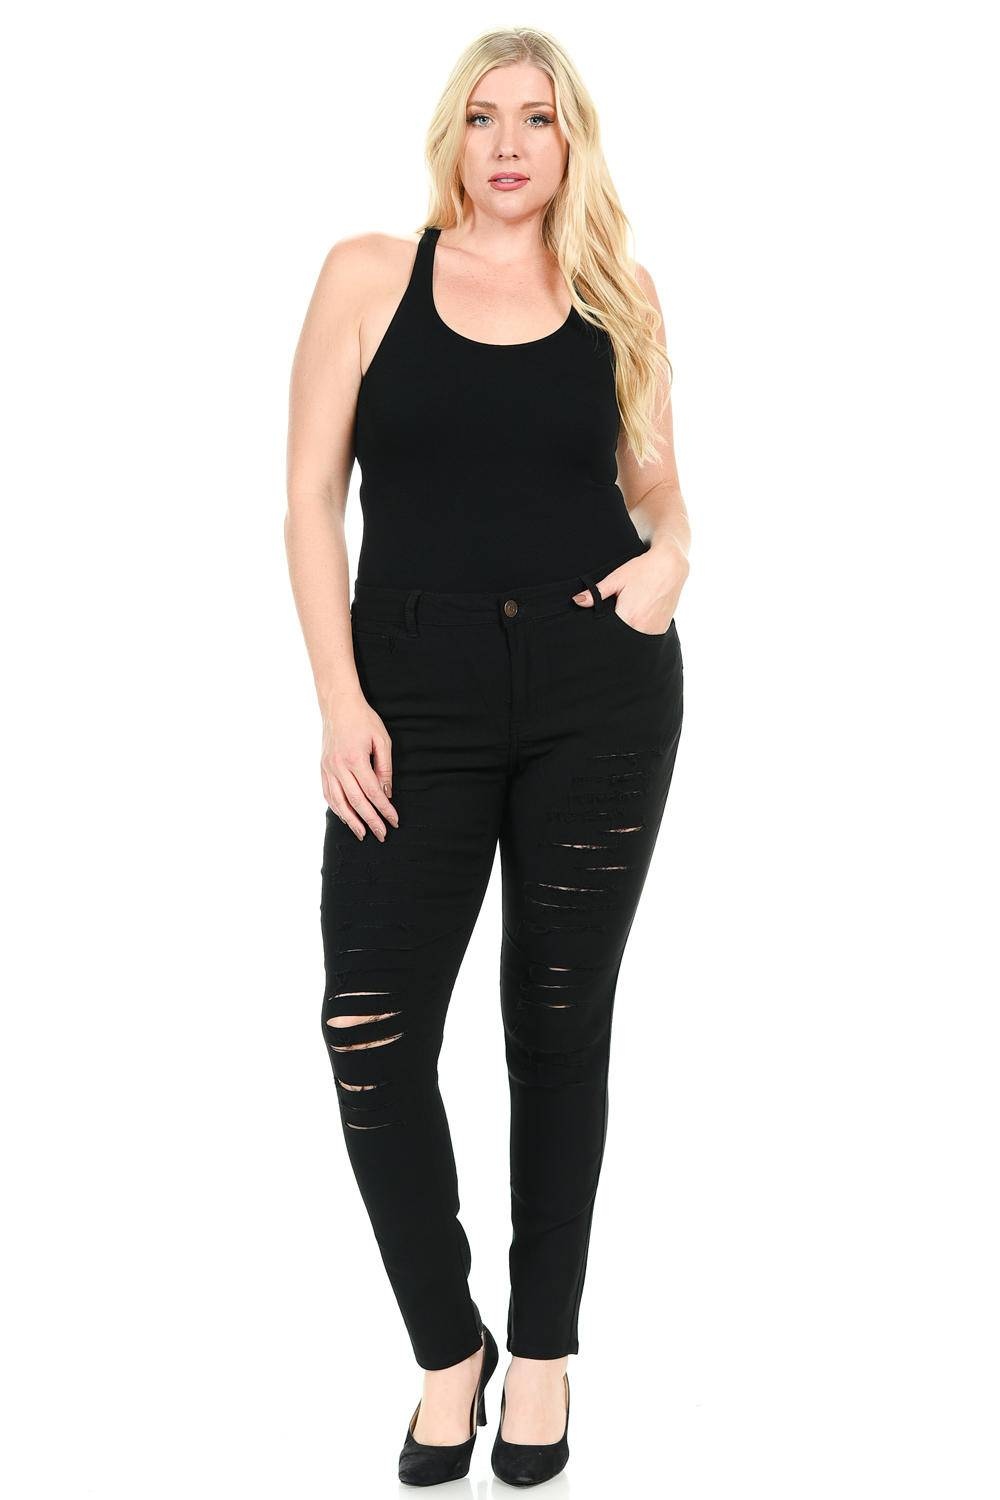 - 926 Women's Jeans · Plus Size · High Waist · Push Up · Style BQ6004A